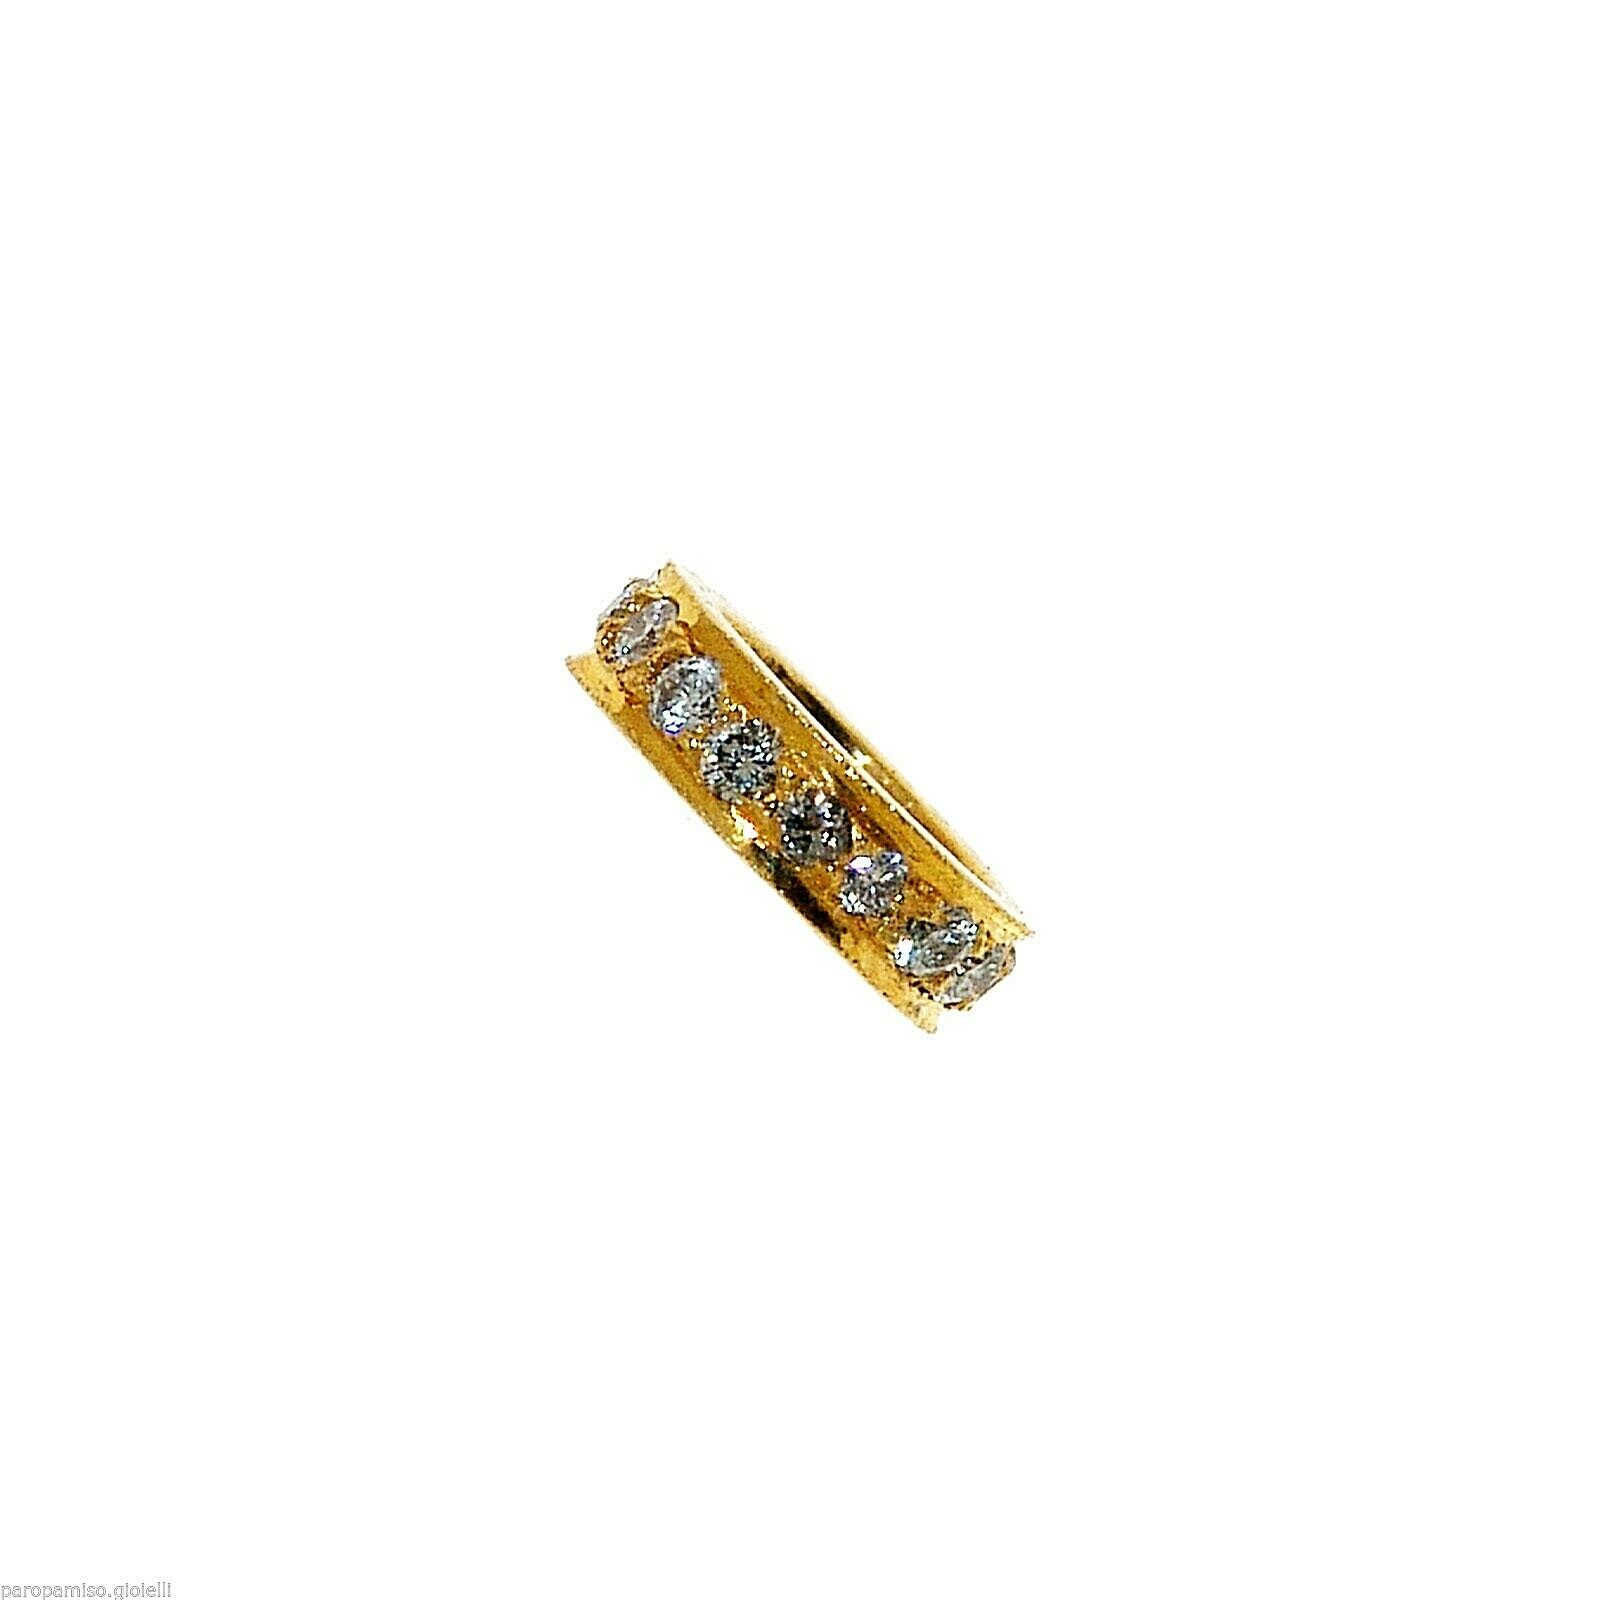 Vintage Indian Element for Jewelry - Gold and Diamonds    -   (1018)